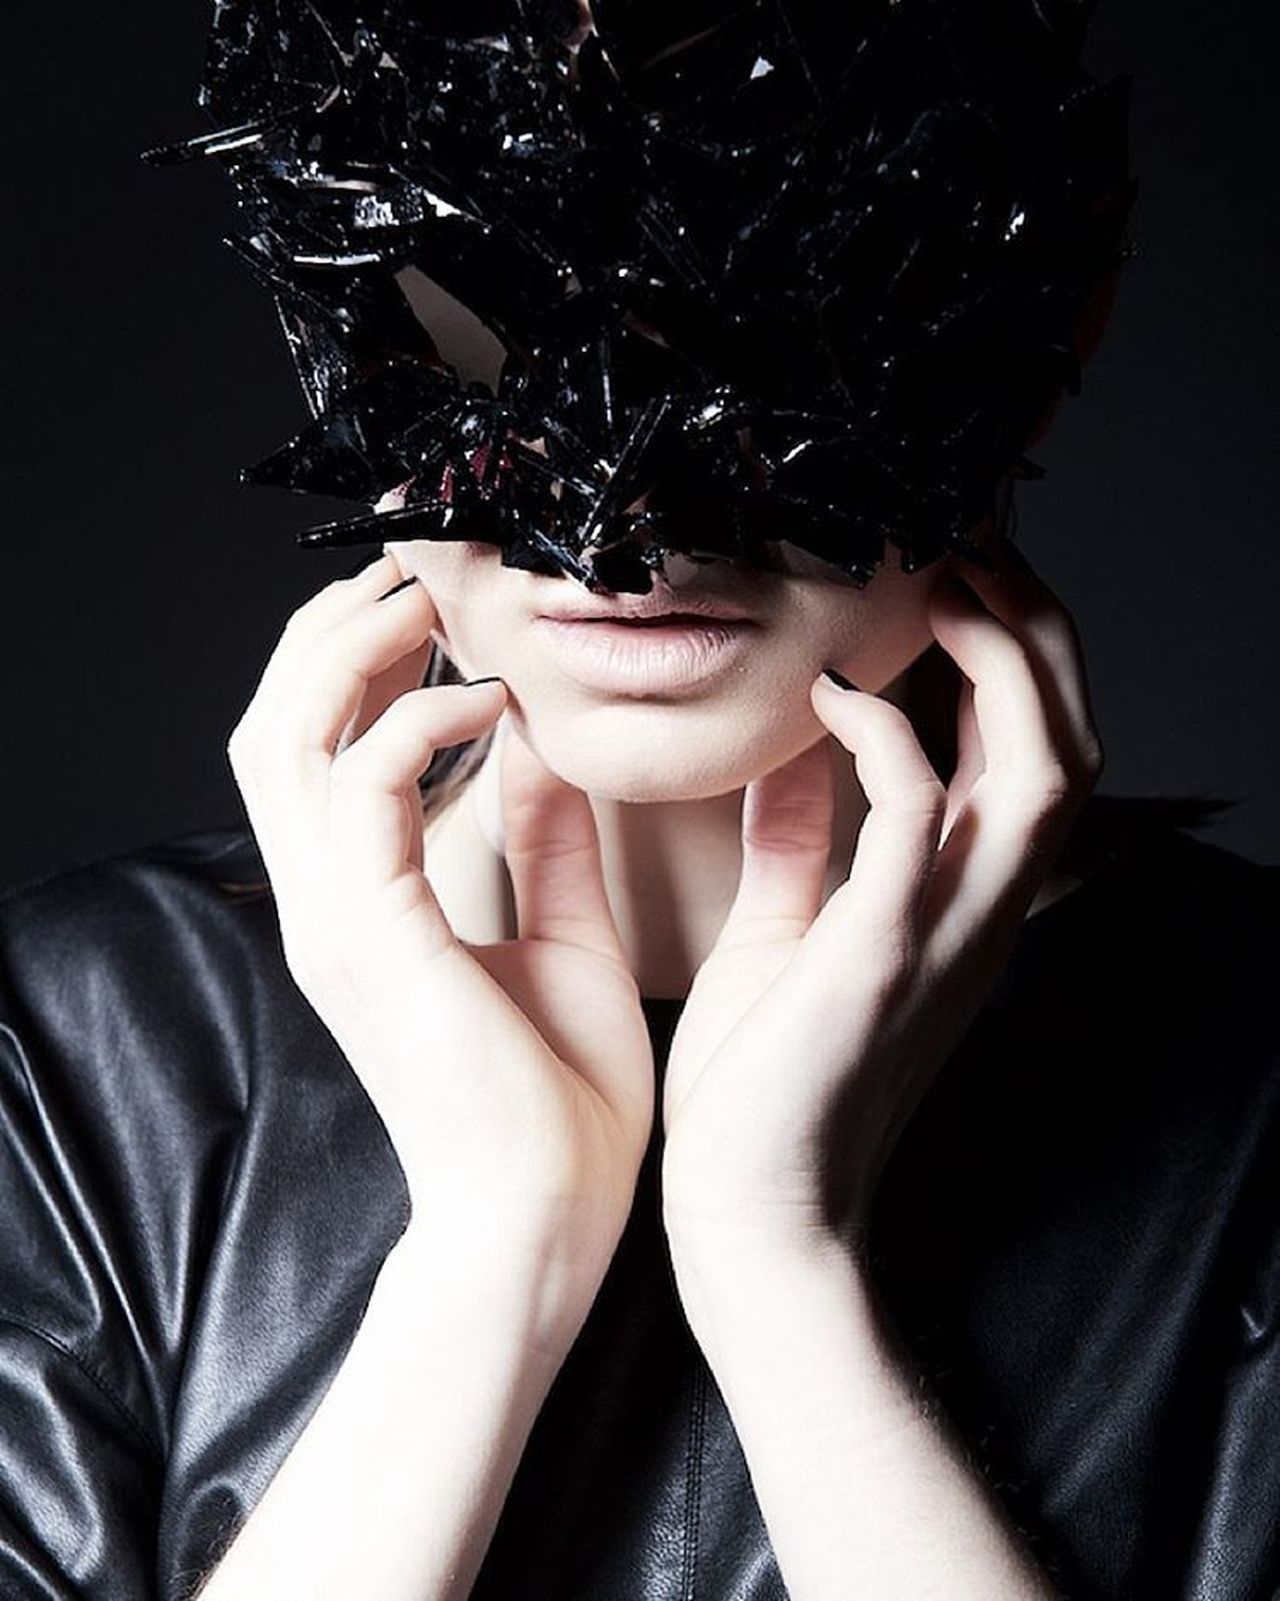 Black Background Casual Clothing Close-up Cropped Editorial  Editorial Fashion Editorialphotography Fashion Fashion Photography Fshionstyle Human Finger Leisure Activity Lifestyles Mask Masked Maskedportraits Masks Part Of Person Personal Perspective Style Style ✌ Touching Unrecognizable Person